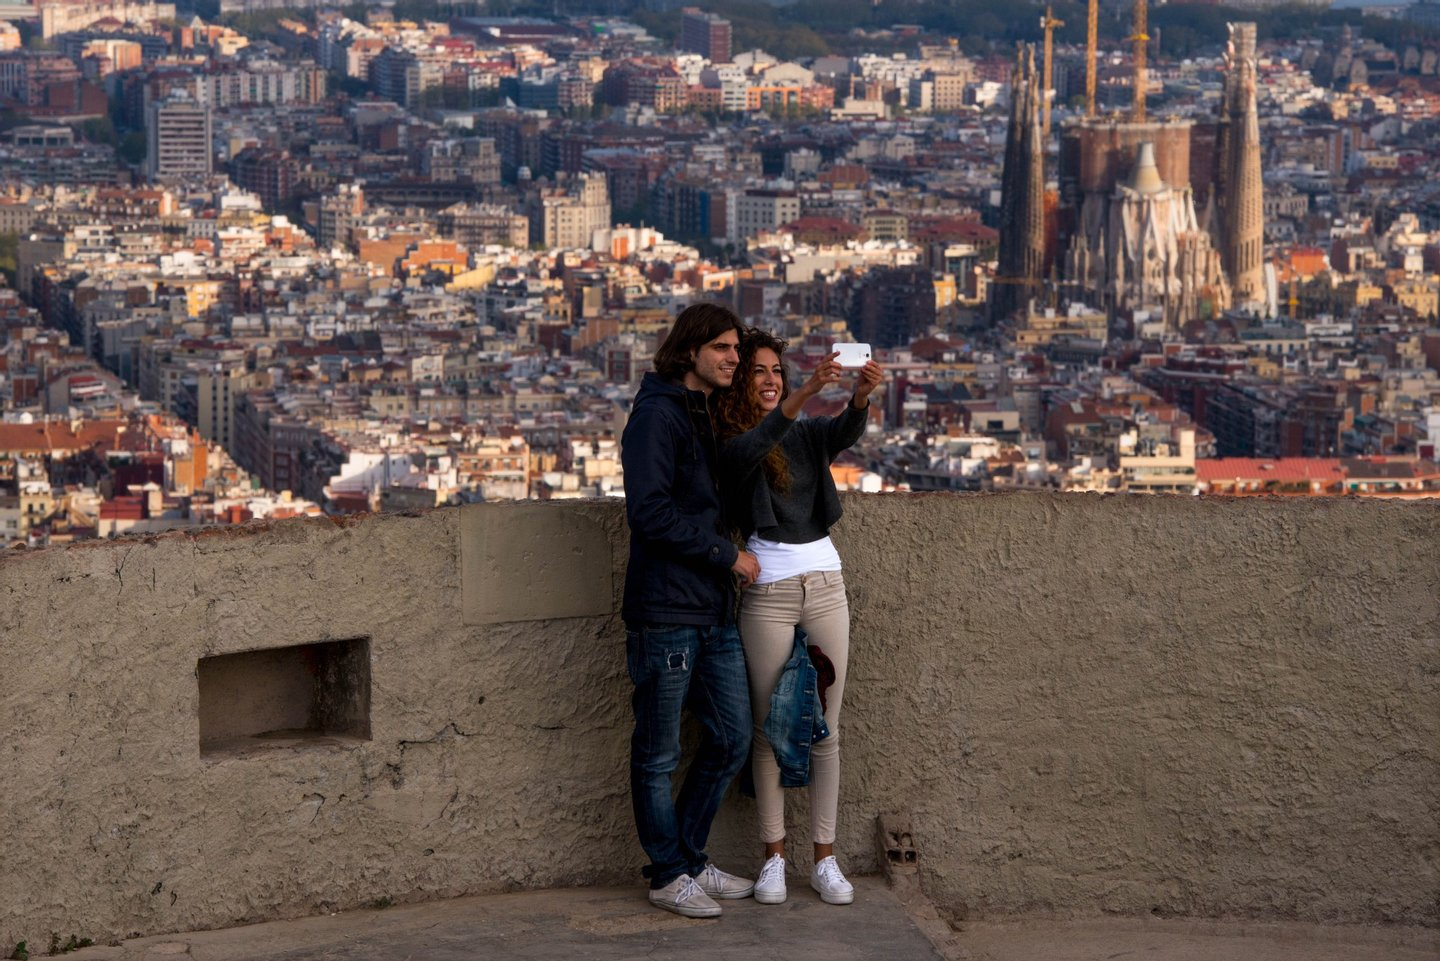 BARCELONA, SPAIN - APRIL 10: A couple take a selfie as they enjoy the views over the city on April 10, 2015 in Barcelona, Spain. Barcelona's city hall has put a regulation in motion that bans large tourist groups visiting Barcelona's most popular market. Barcelona's authorities are debating how to control the number of tourist in the city as an estimated 10 million people are due to visit this year. (Photo by David Ramos/Getty Images)